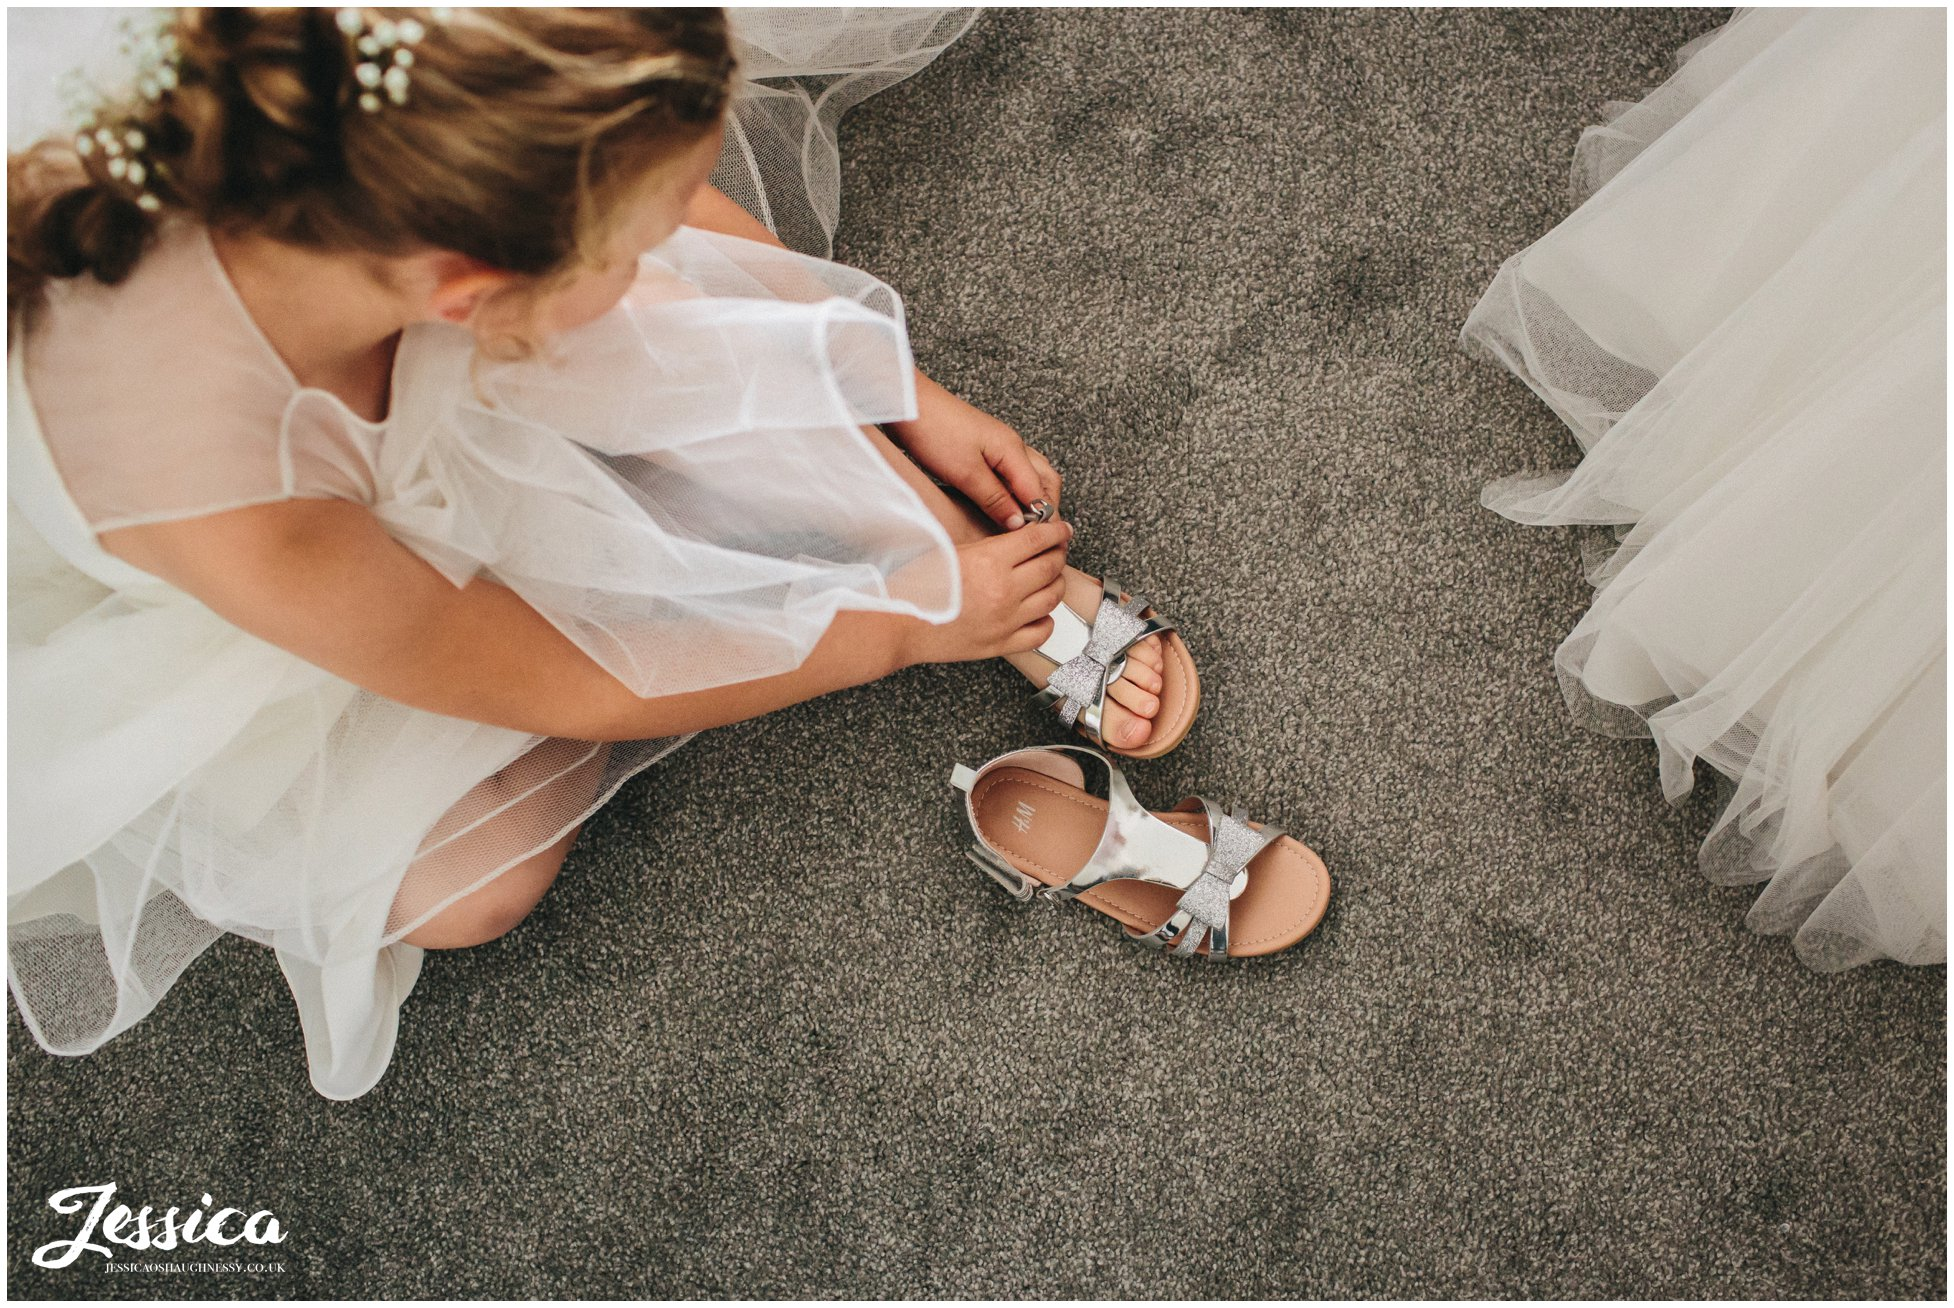 flower girl puts on her shoes - sheldrakes wedding photography